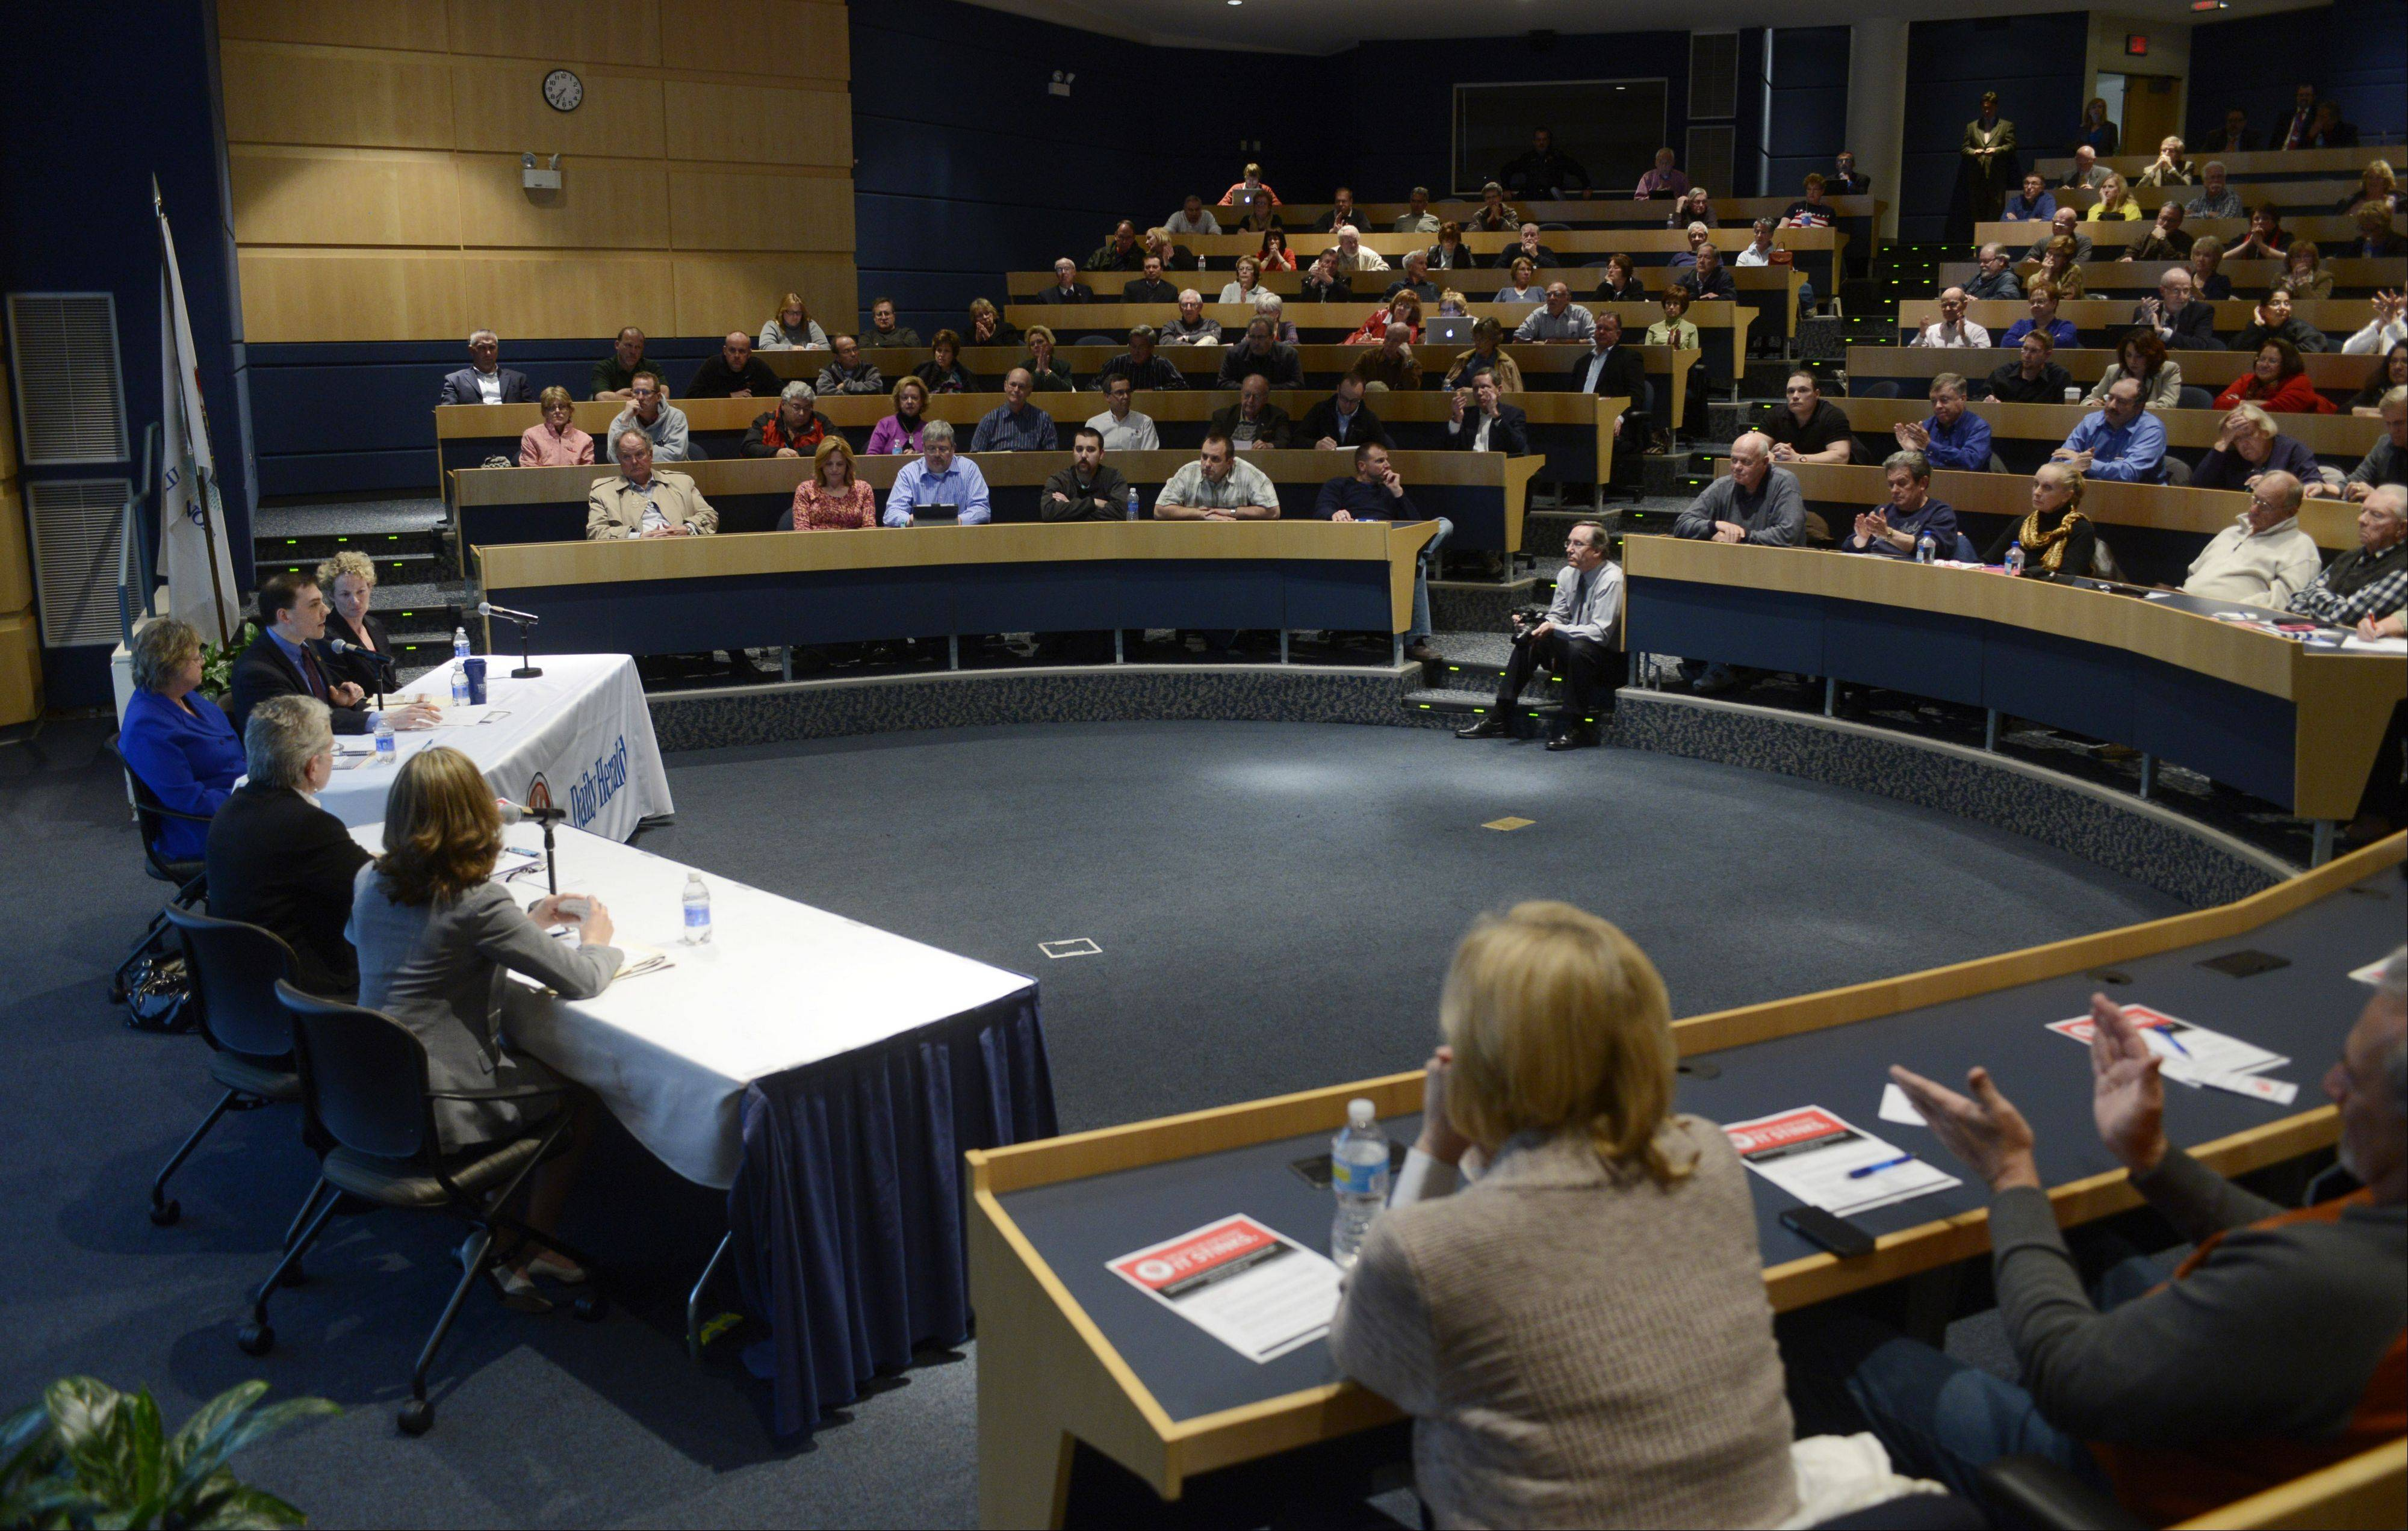 JOE LEWNARD/jlewnard@dailyherald.com � A packed house participated in a pension reform forum sponsored by the Daily Herald and Reboot Illinois at Harper College in Palatine last month.